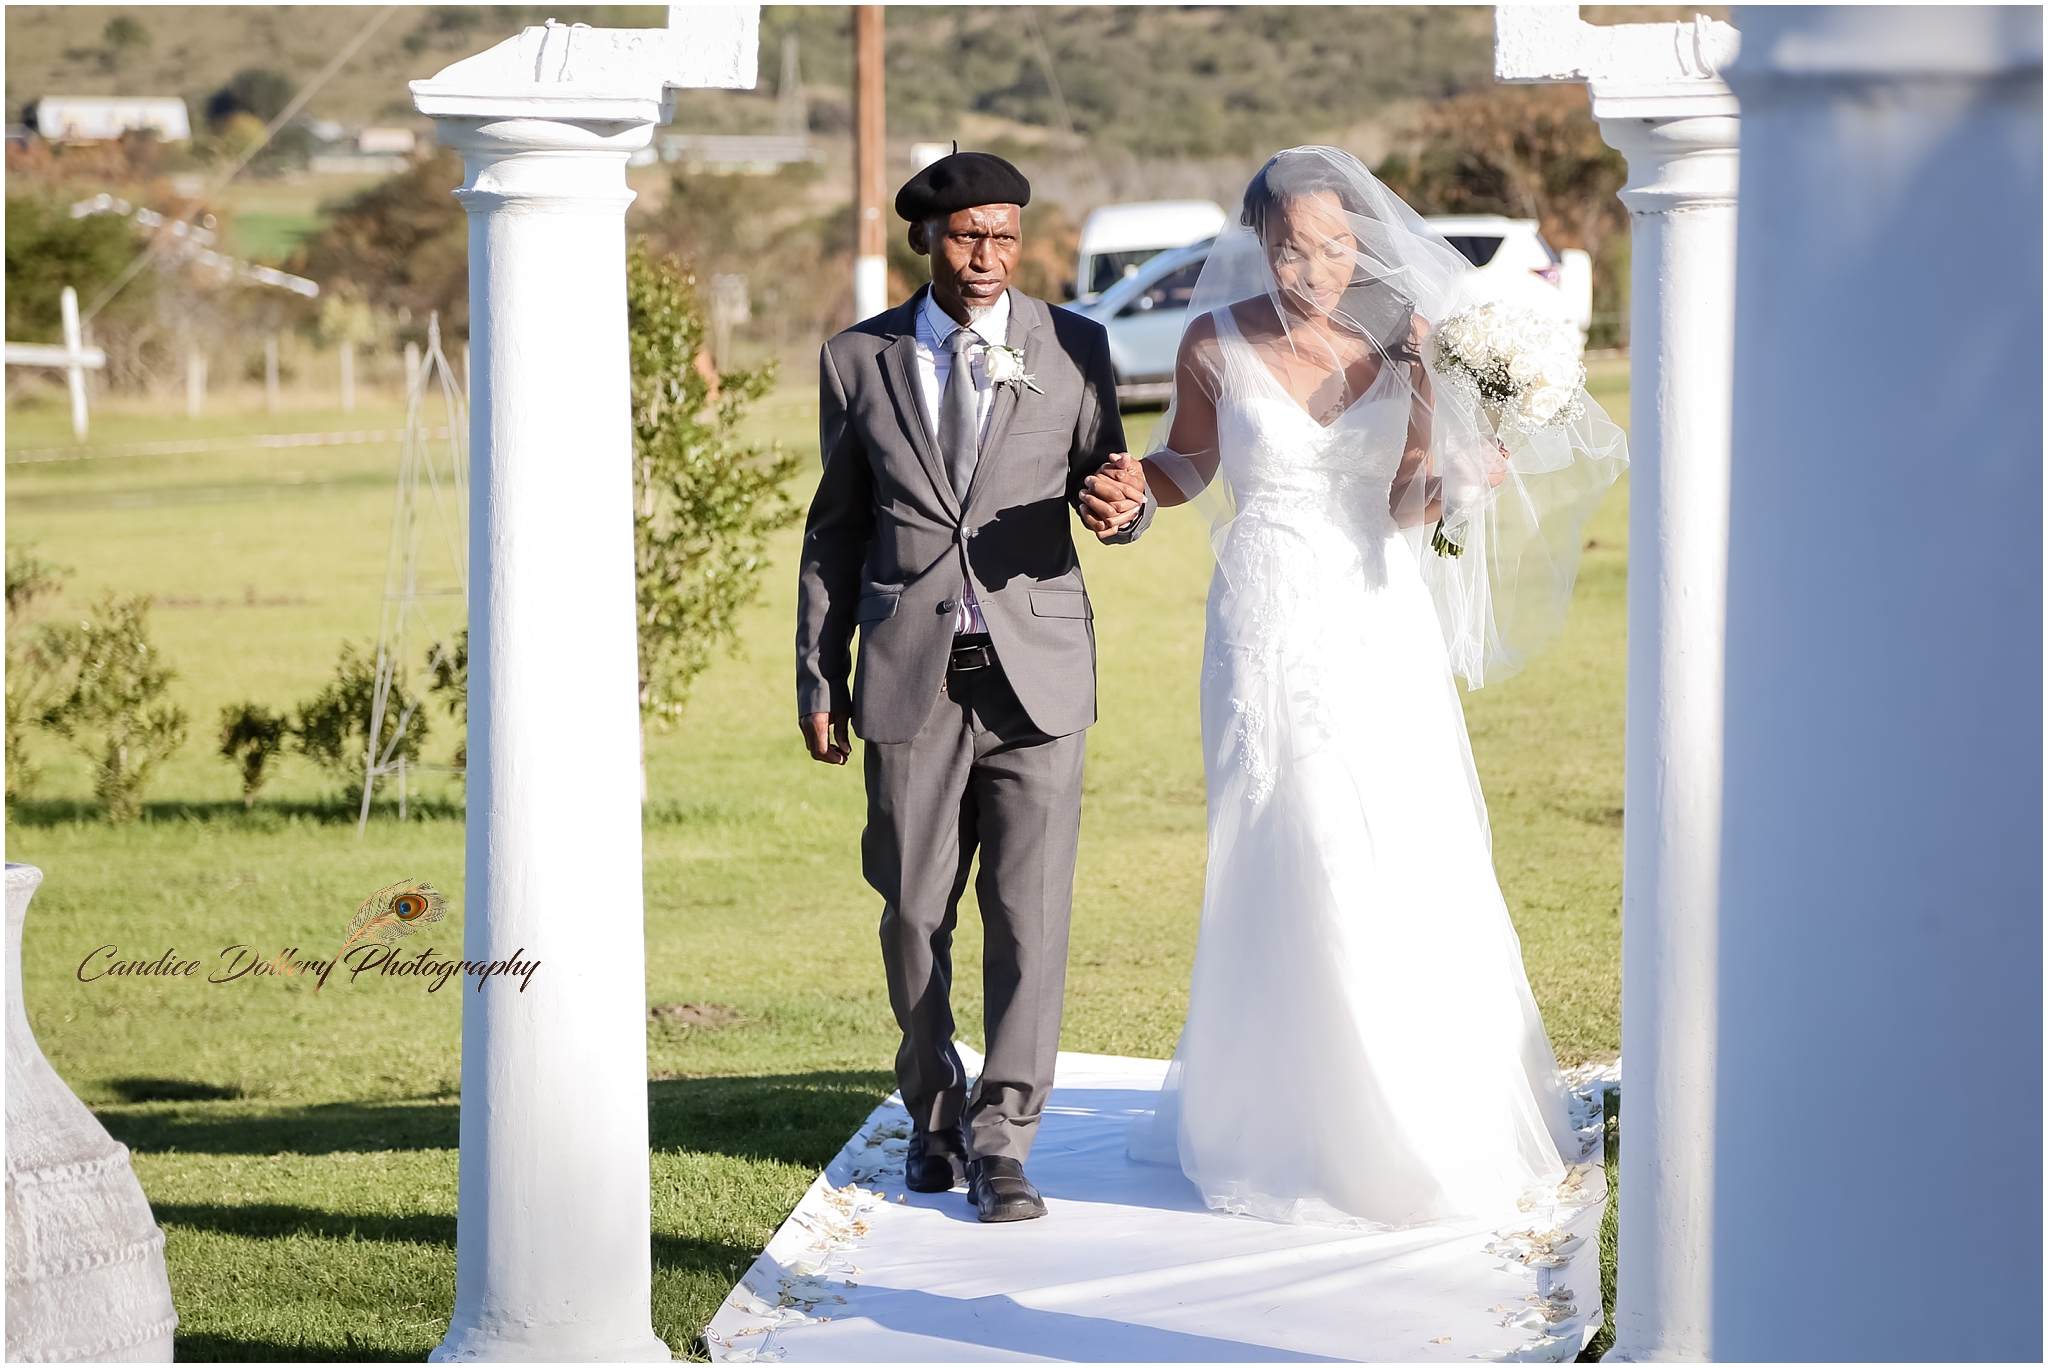 lelethu-kgotsos-wedding-candice-dollery-photography_1609